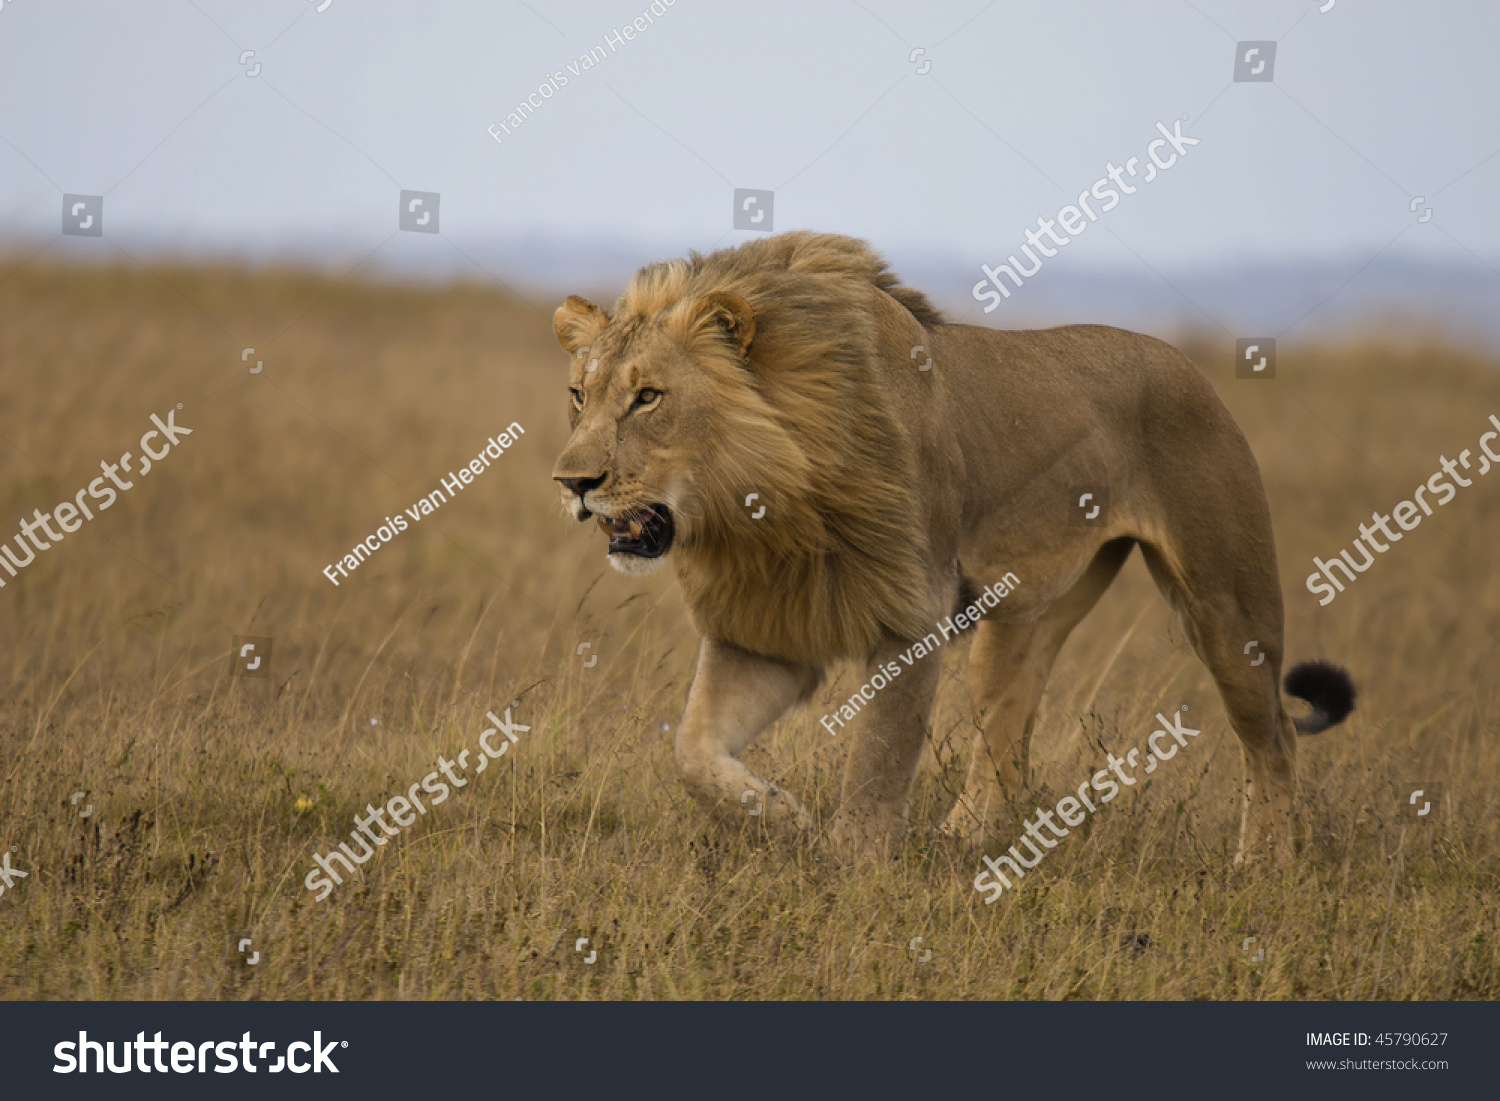 Male lion stalking prey - photo#15